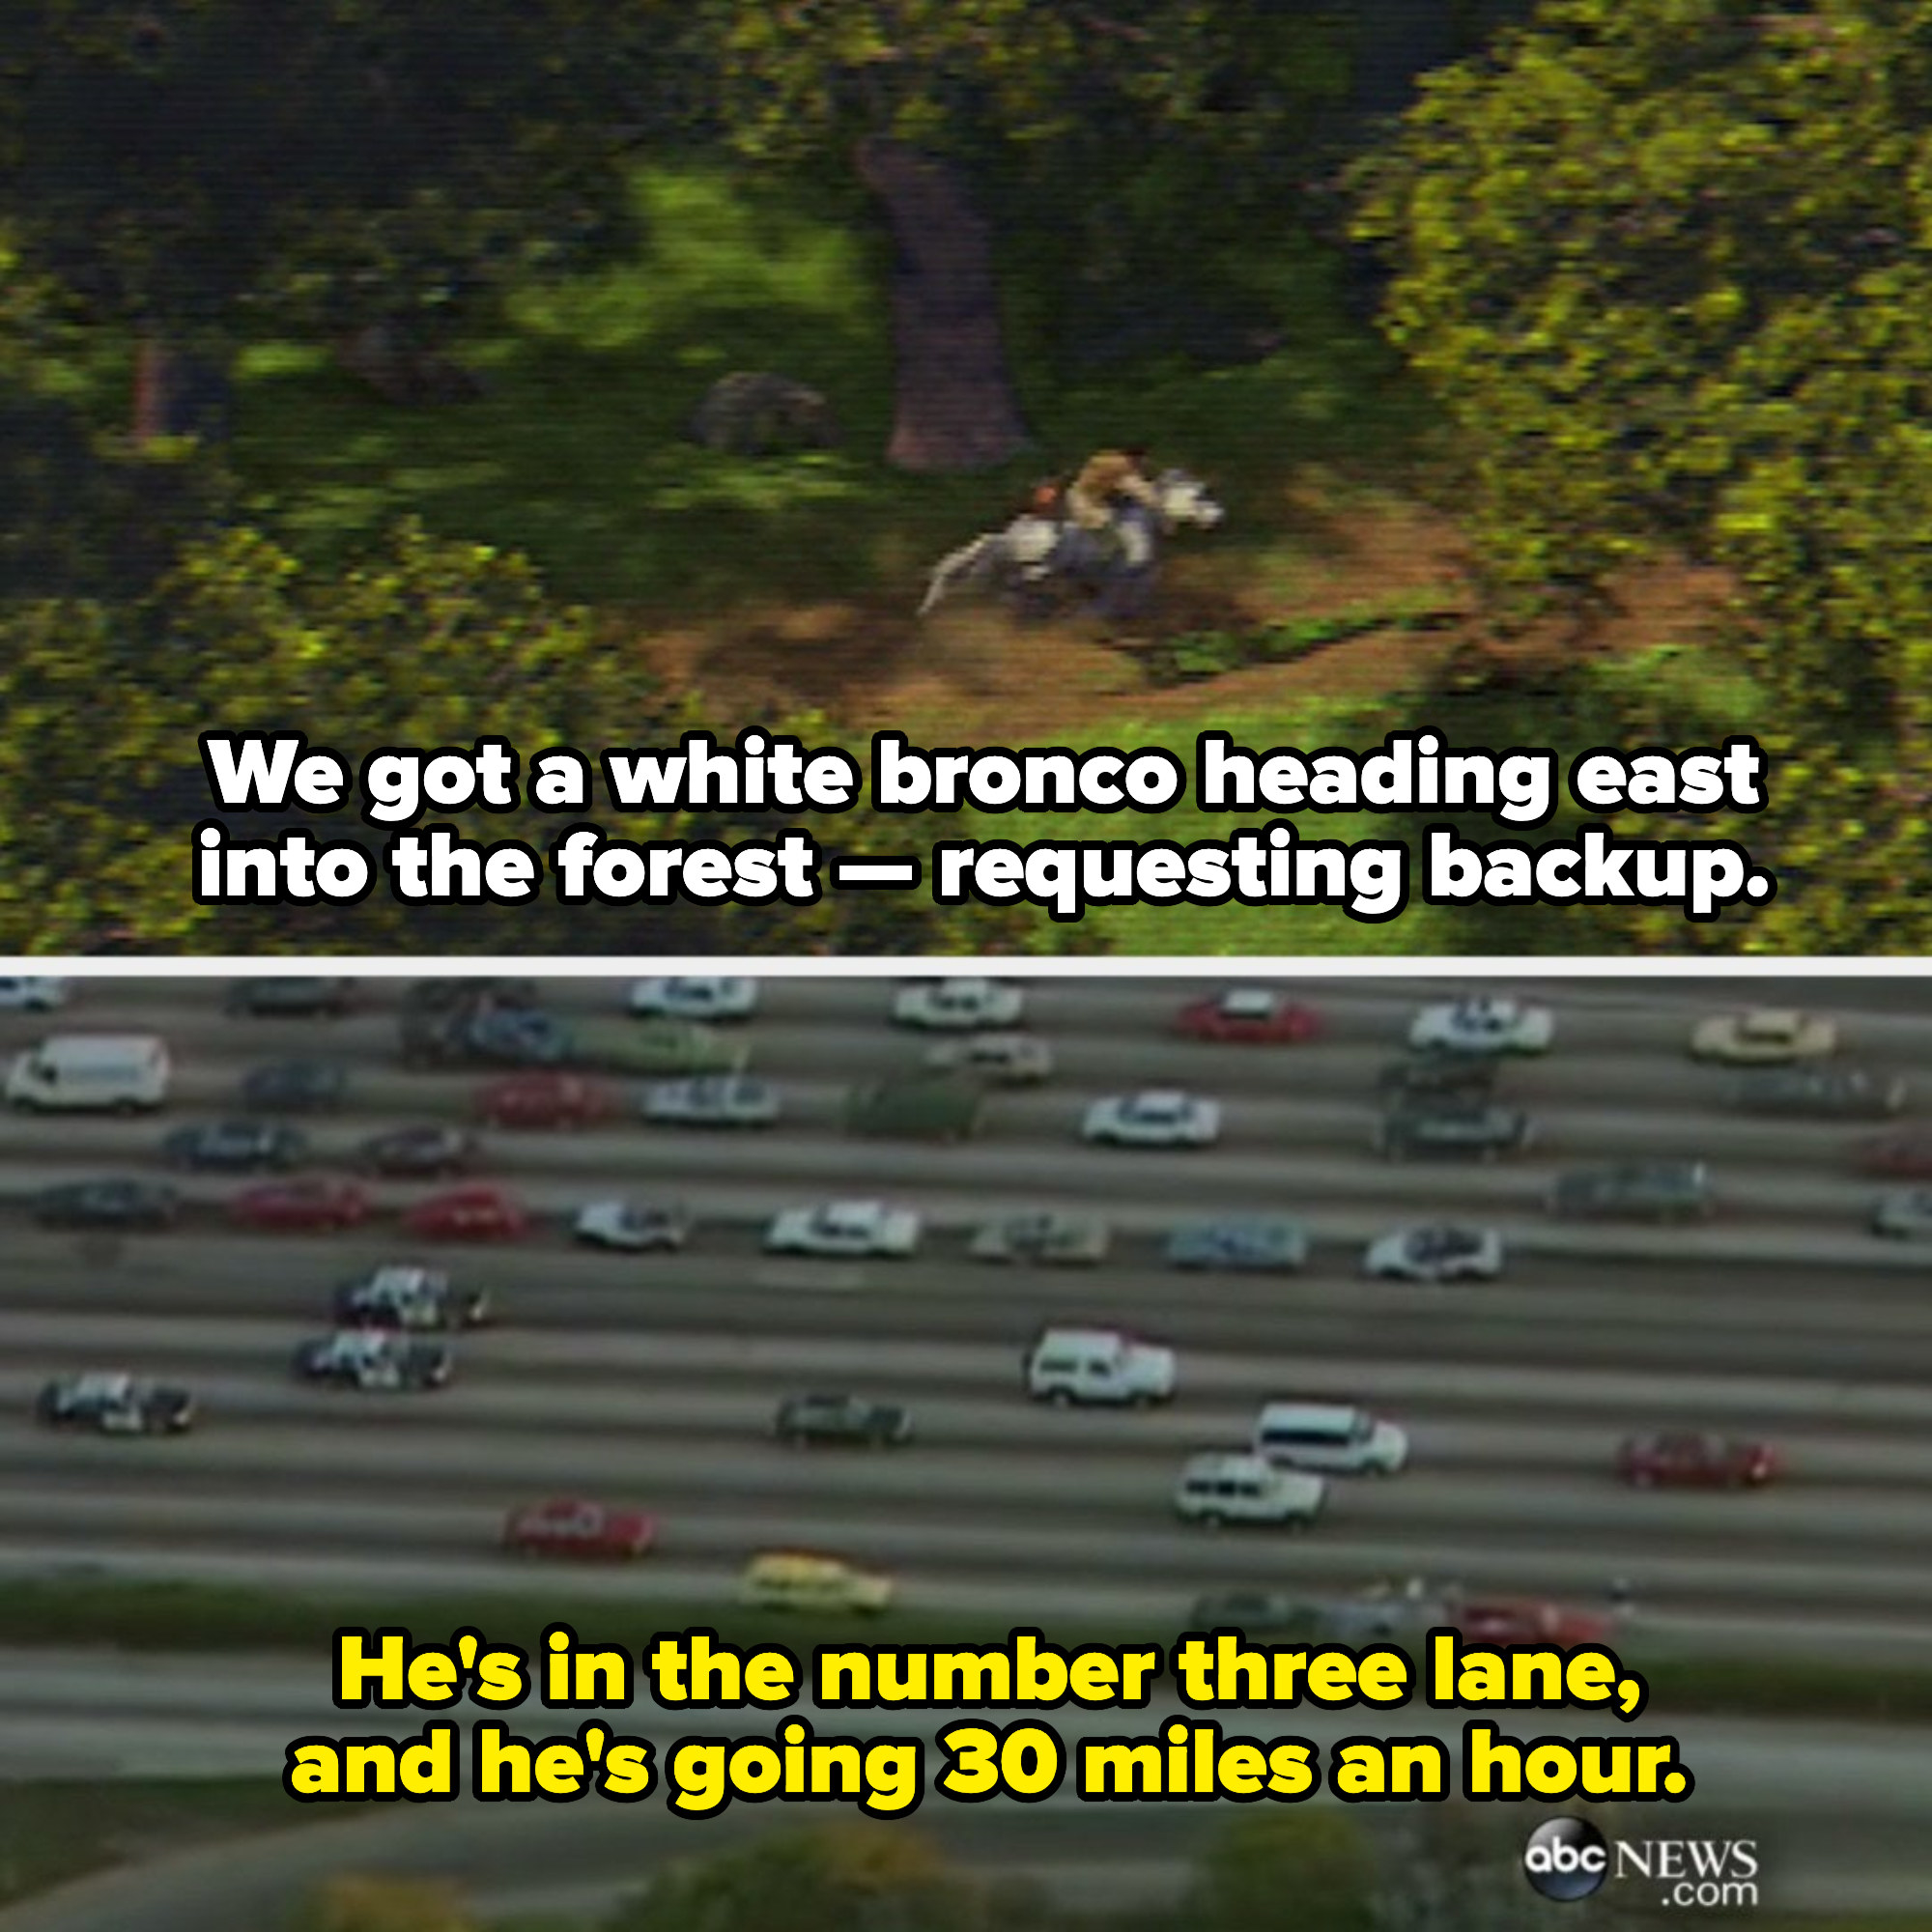 """Shrek 2 voiceover: """"We got a white bronco heading east into the forest -- requesting backup;"""" Voiceover from ABC News: """"He's in the number three lane, and he's going 30 miles an hour"""""""